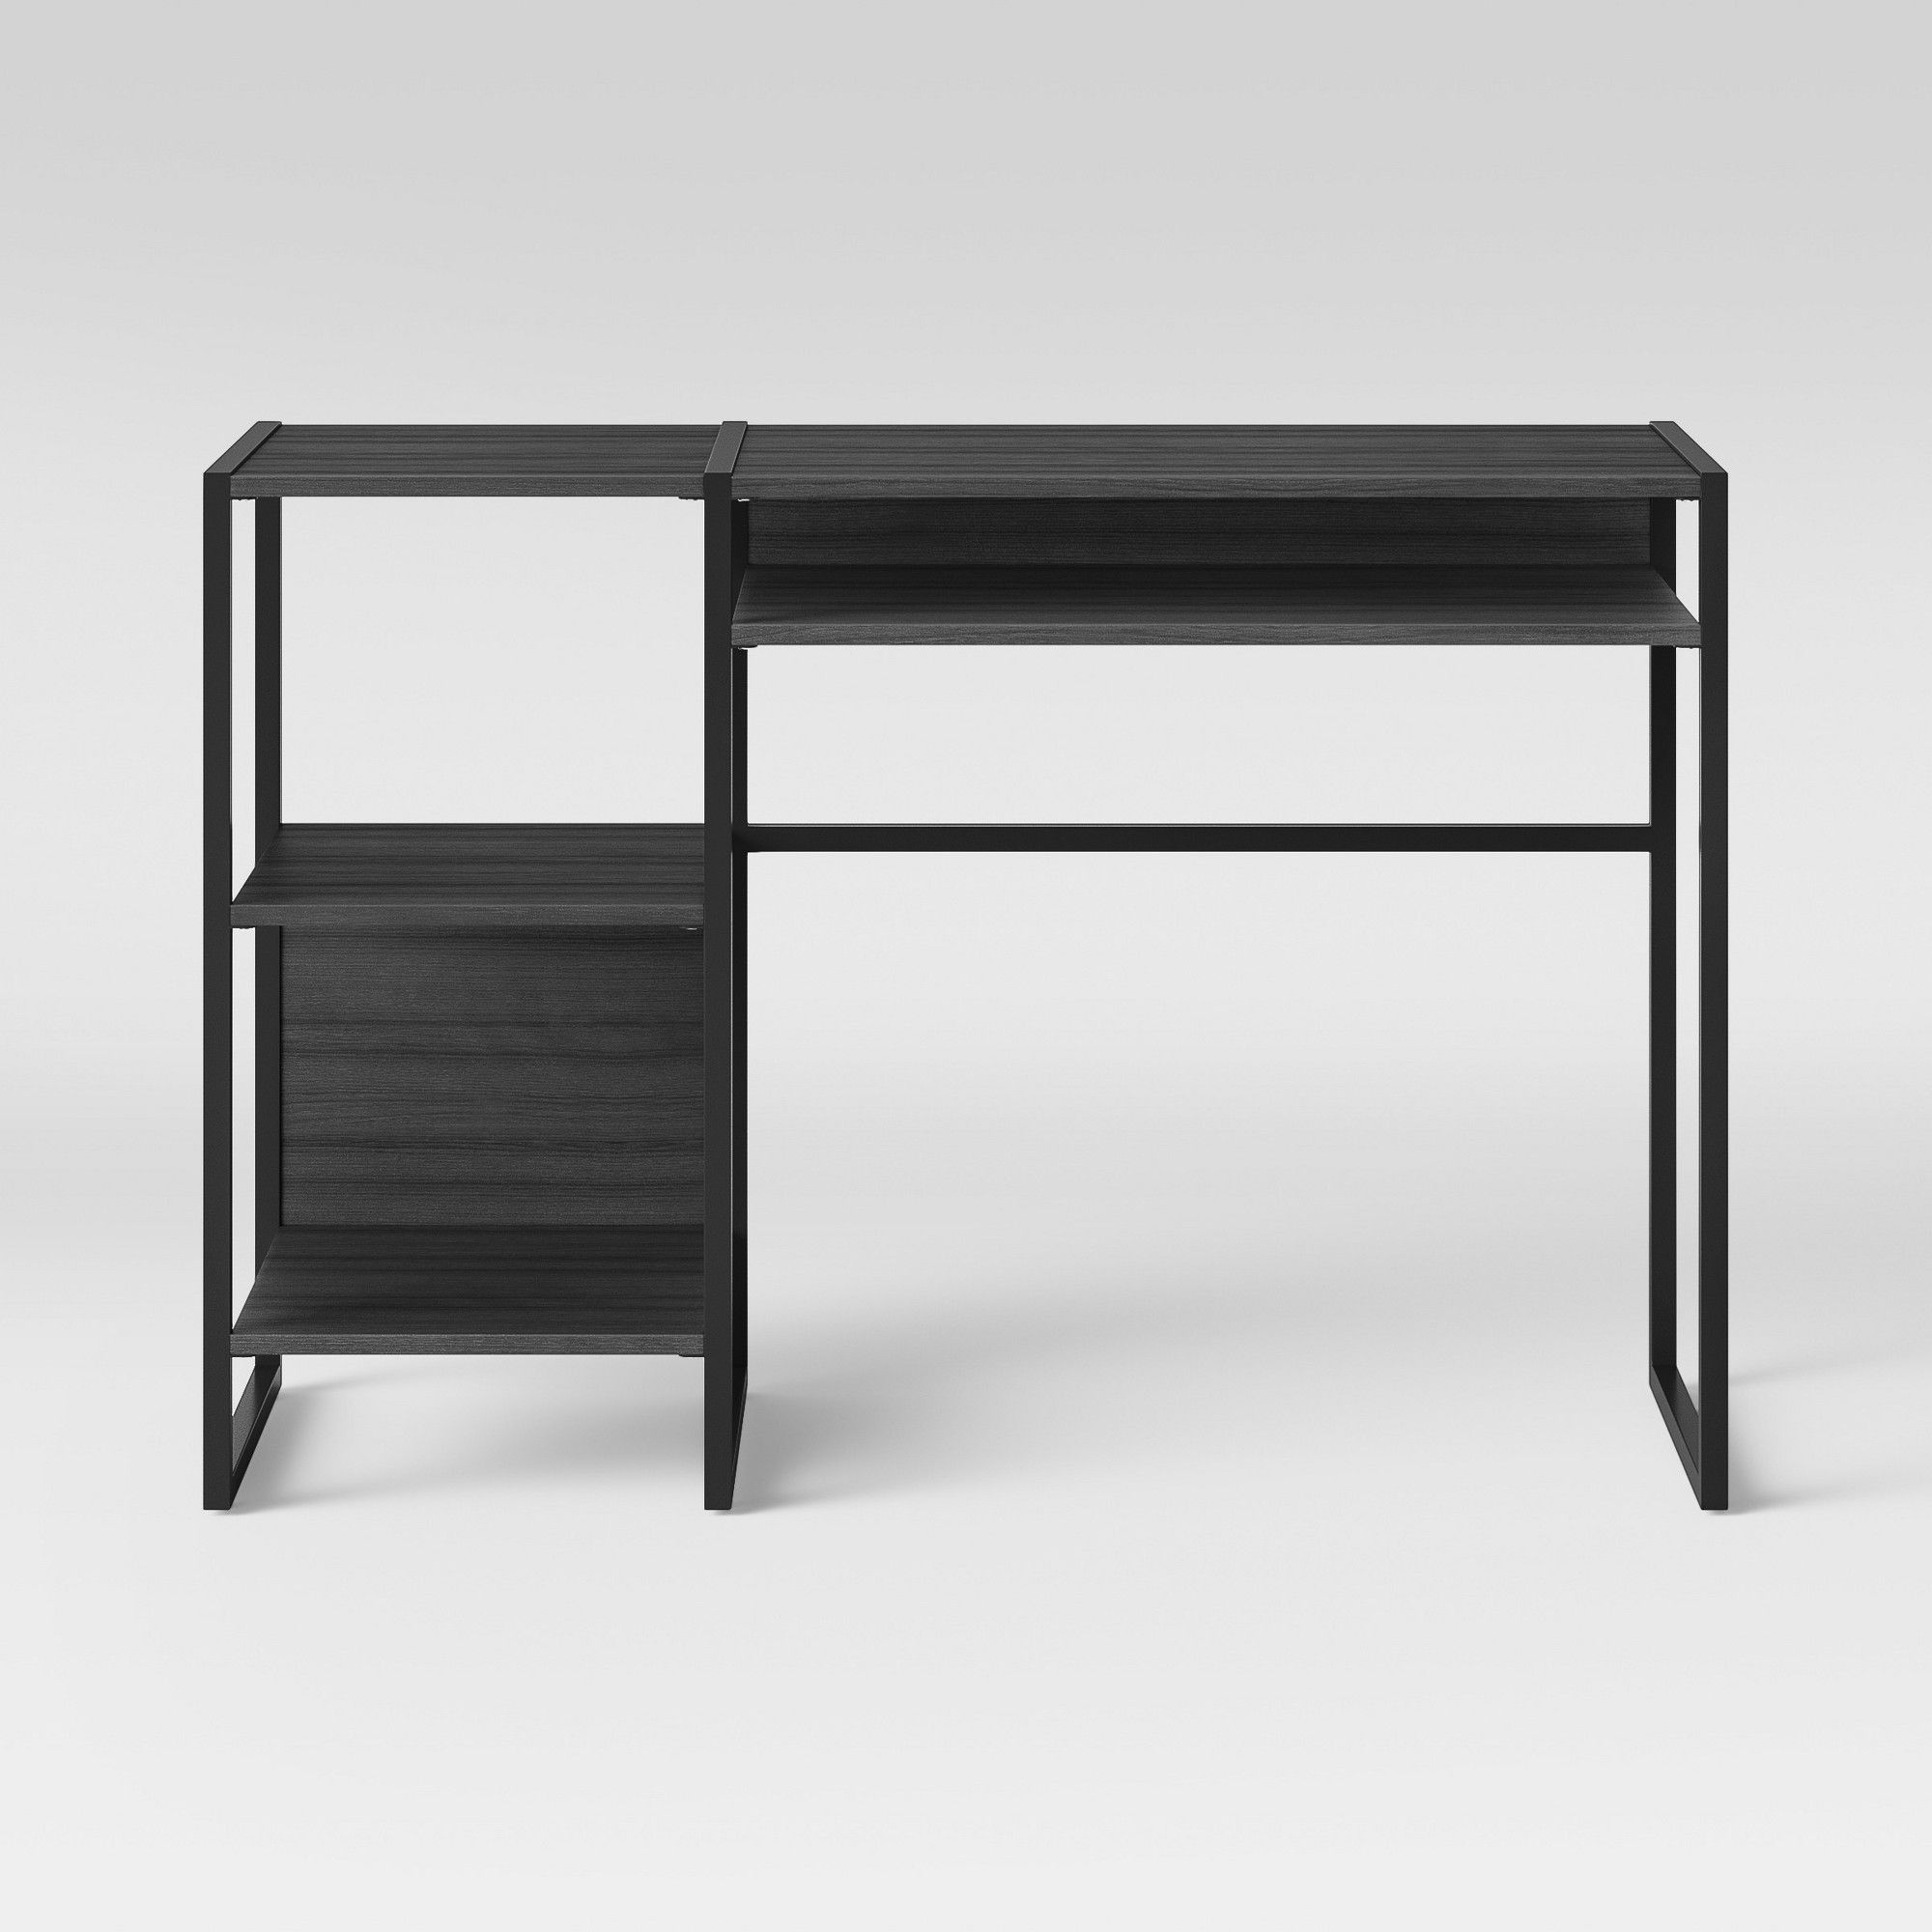 Paulo Wood Writing Desk With Storage Weathered Smoke Gray Project 62 Wood Writing Desk Desks For Small Spaces Apartment Desk